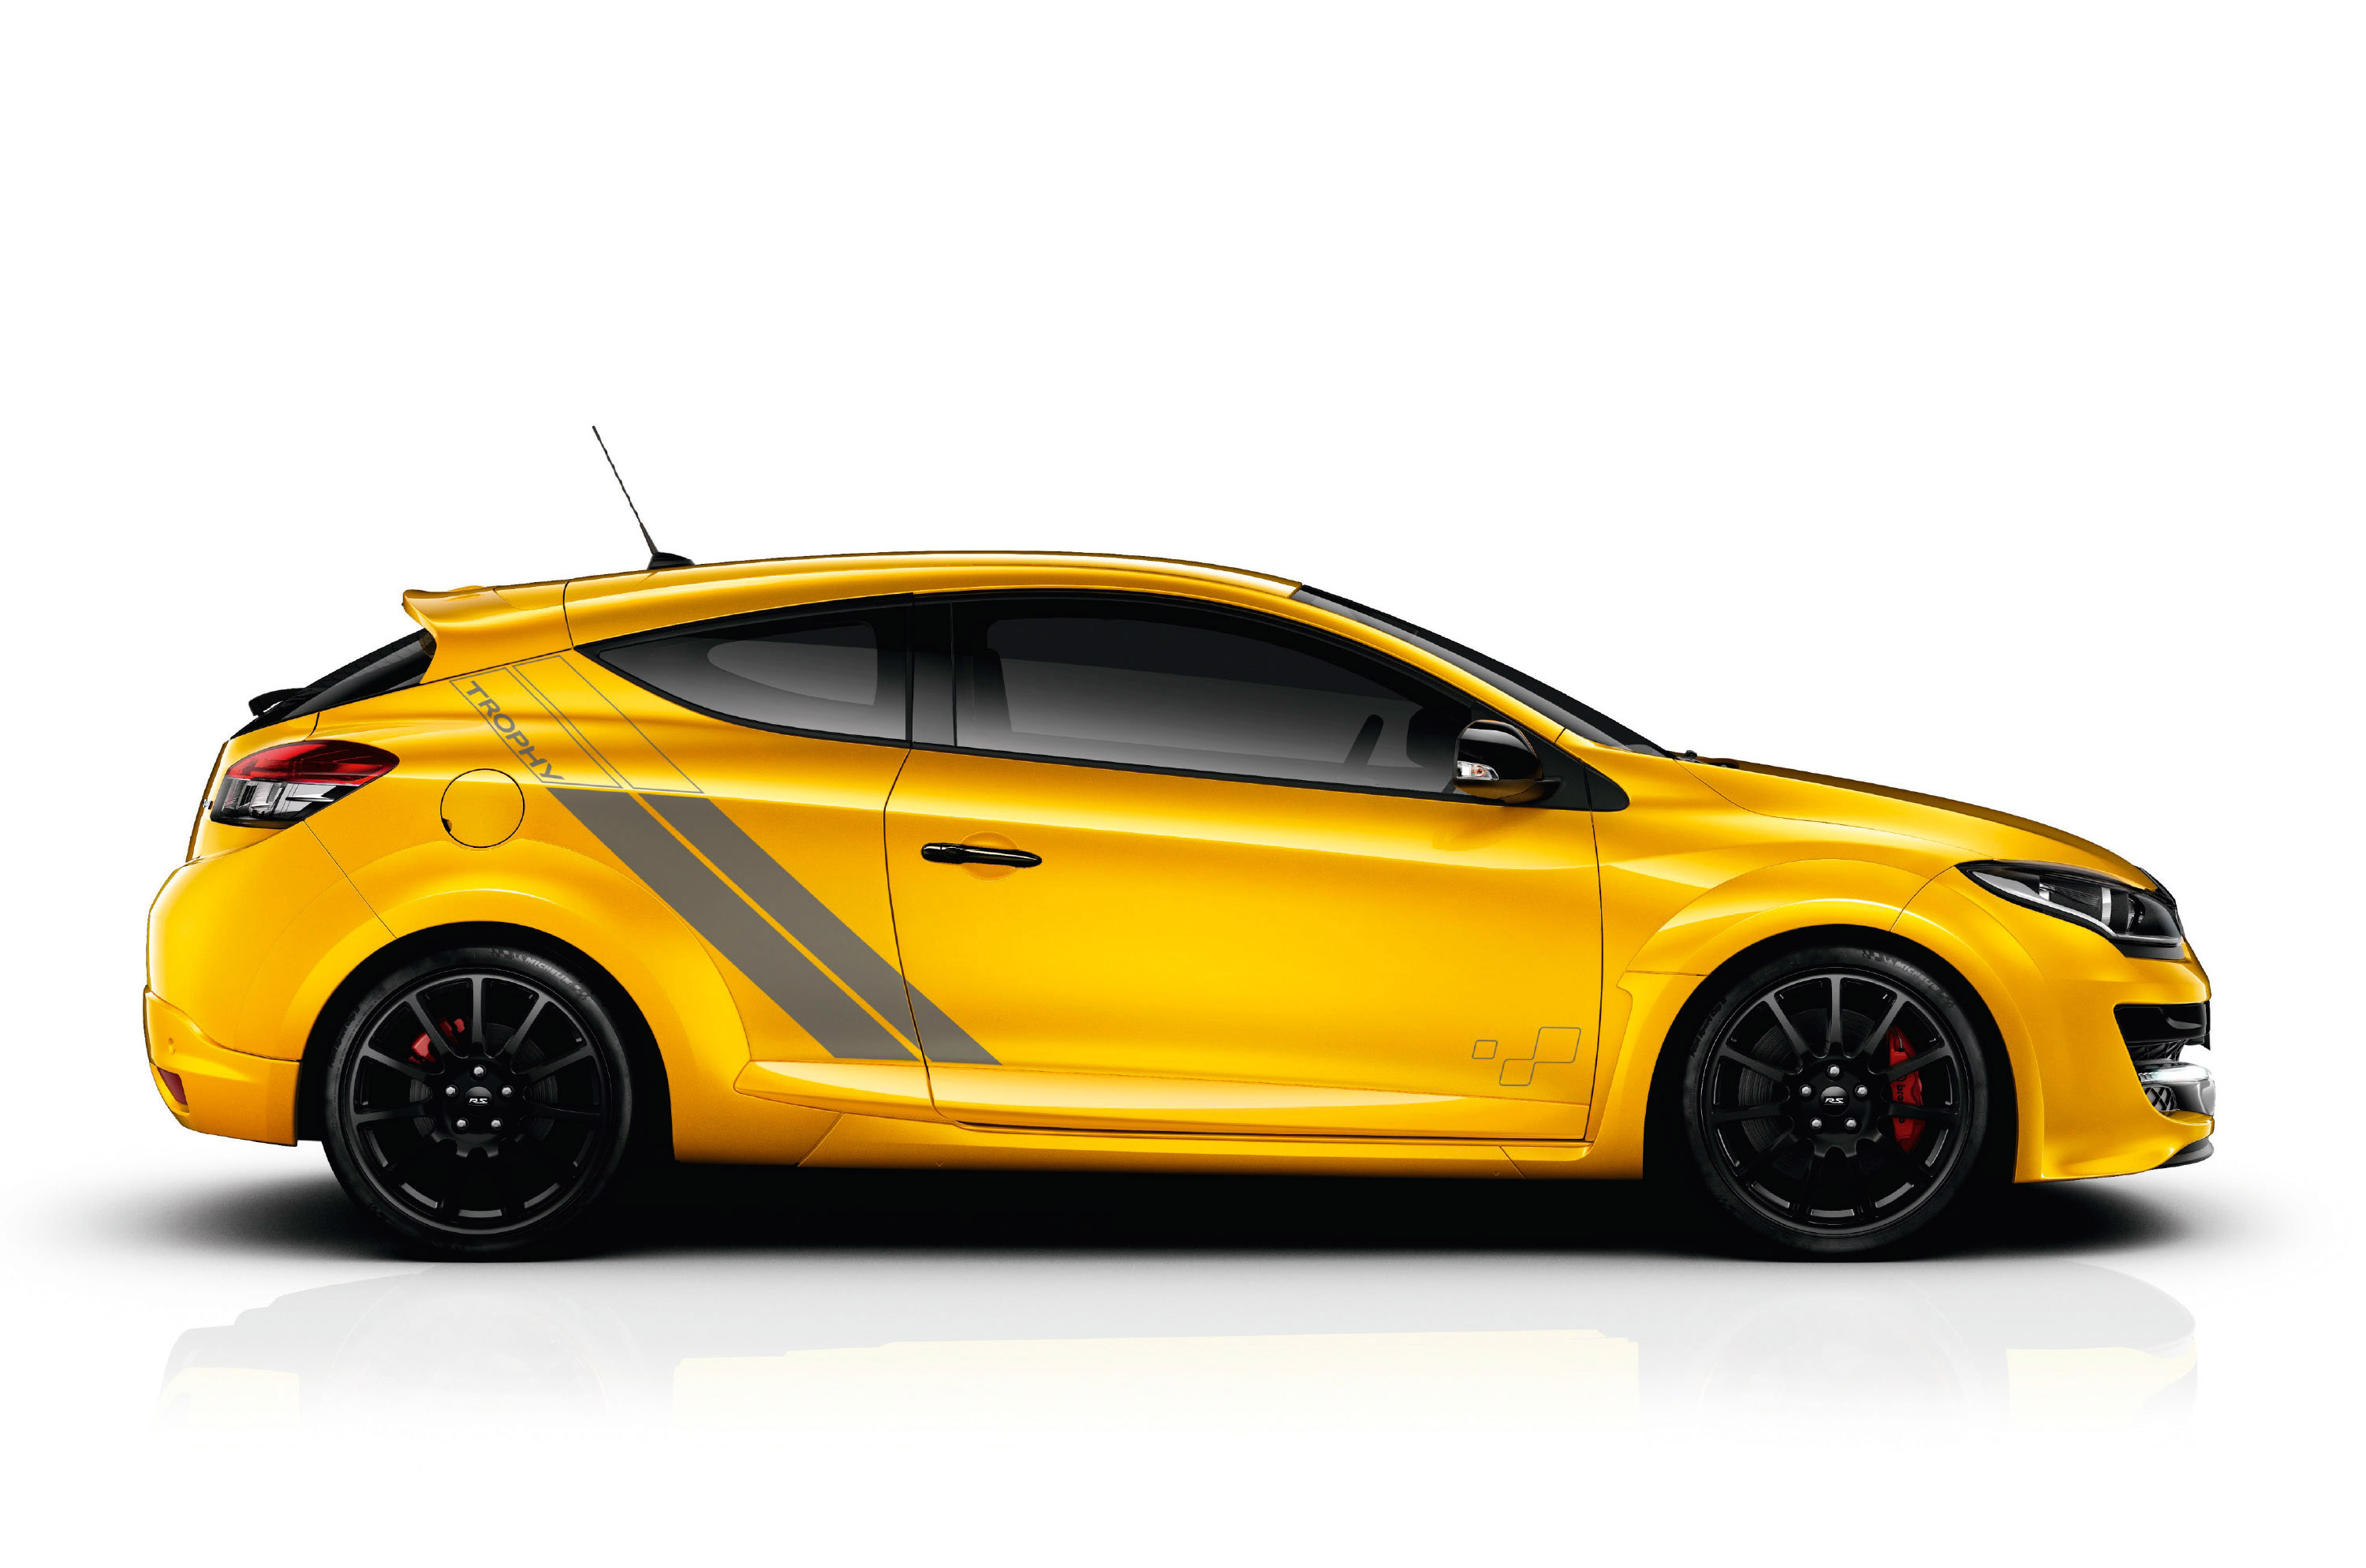 renault megane r s 275 trophy r pricing announced. Black Bedroom Furniture Sets. Home Design Ideas